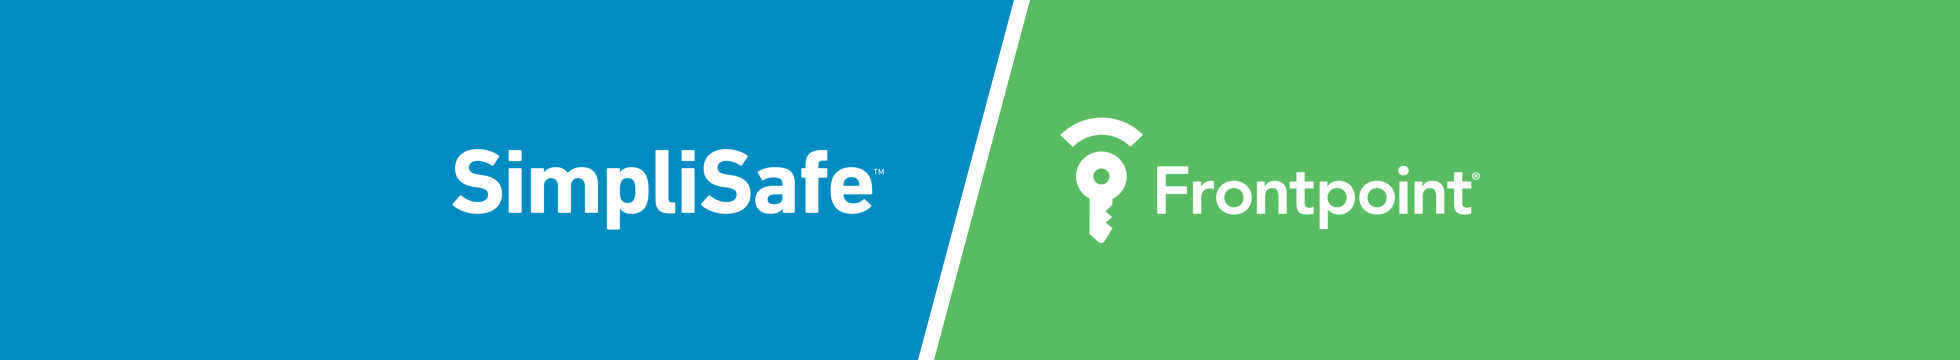 Compare SimpliSafe vs. Frontpoint Image